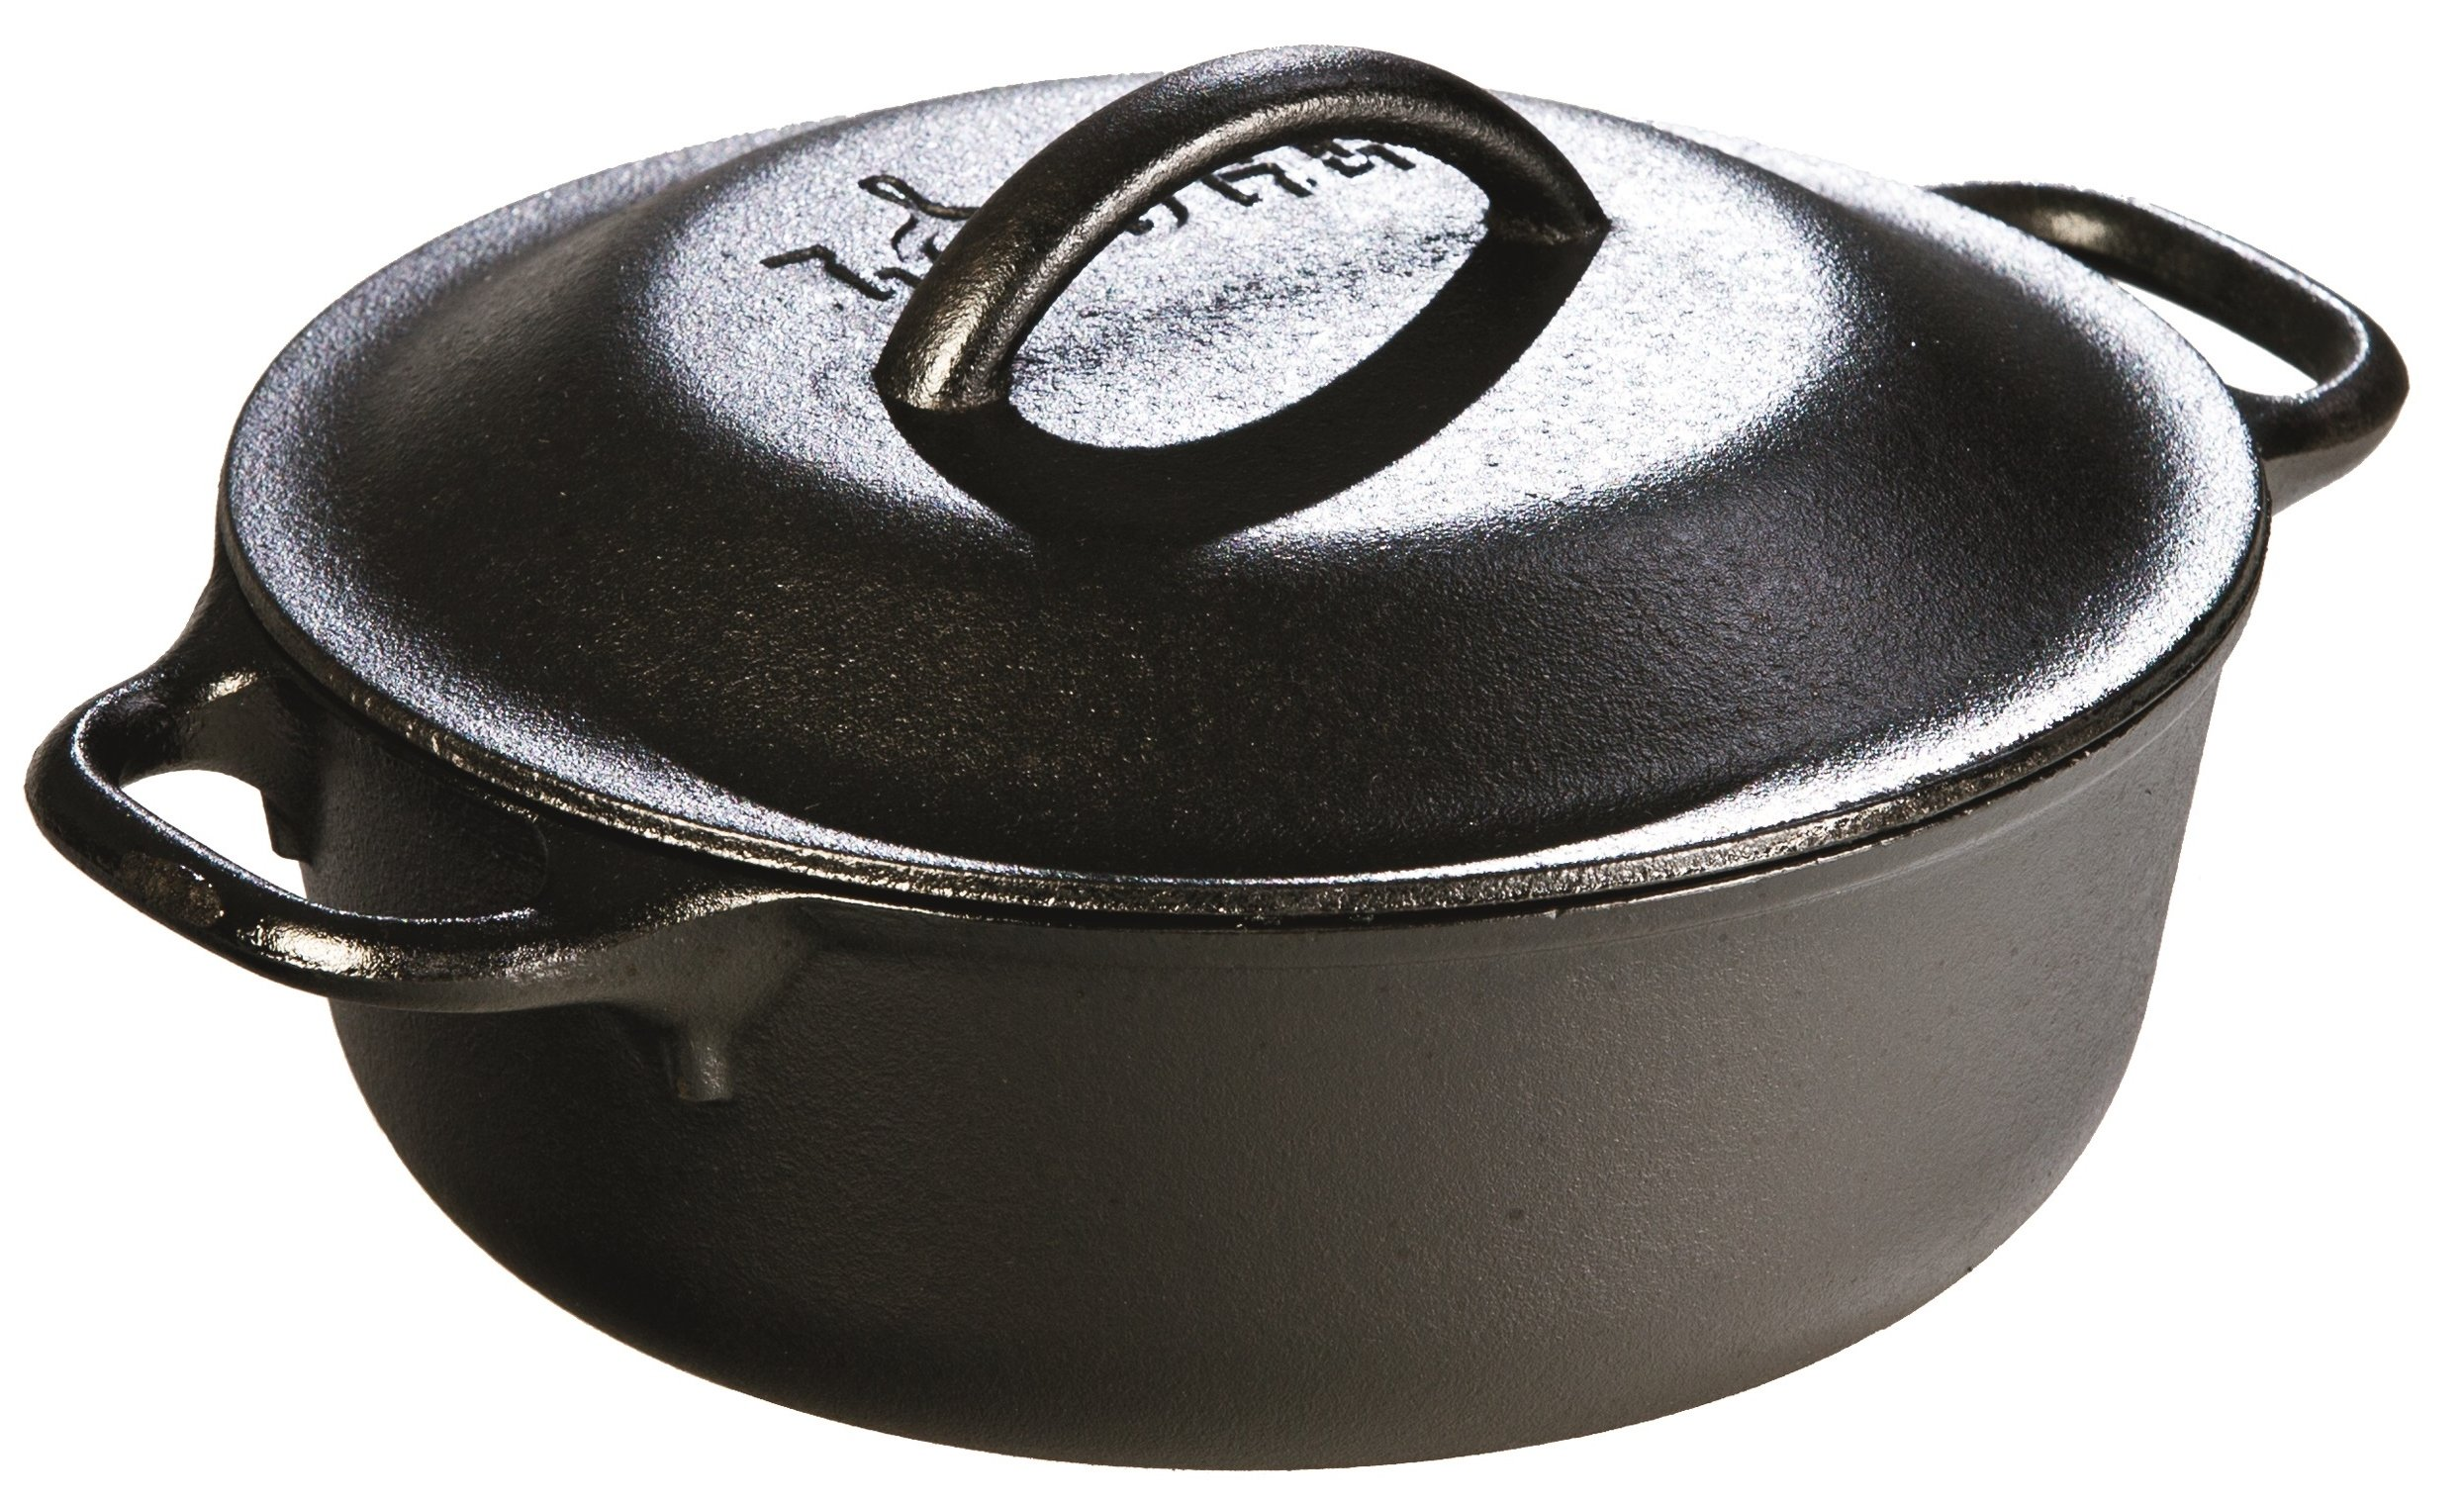 Lodge 2 Quart Cast Iron Dutch Oven. Pre-seasoned Pot with Lid for Cooking, Basting, or Baking